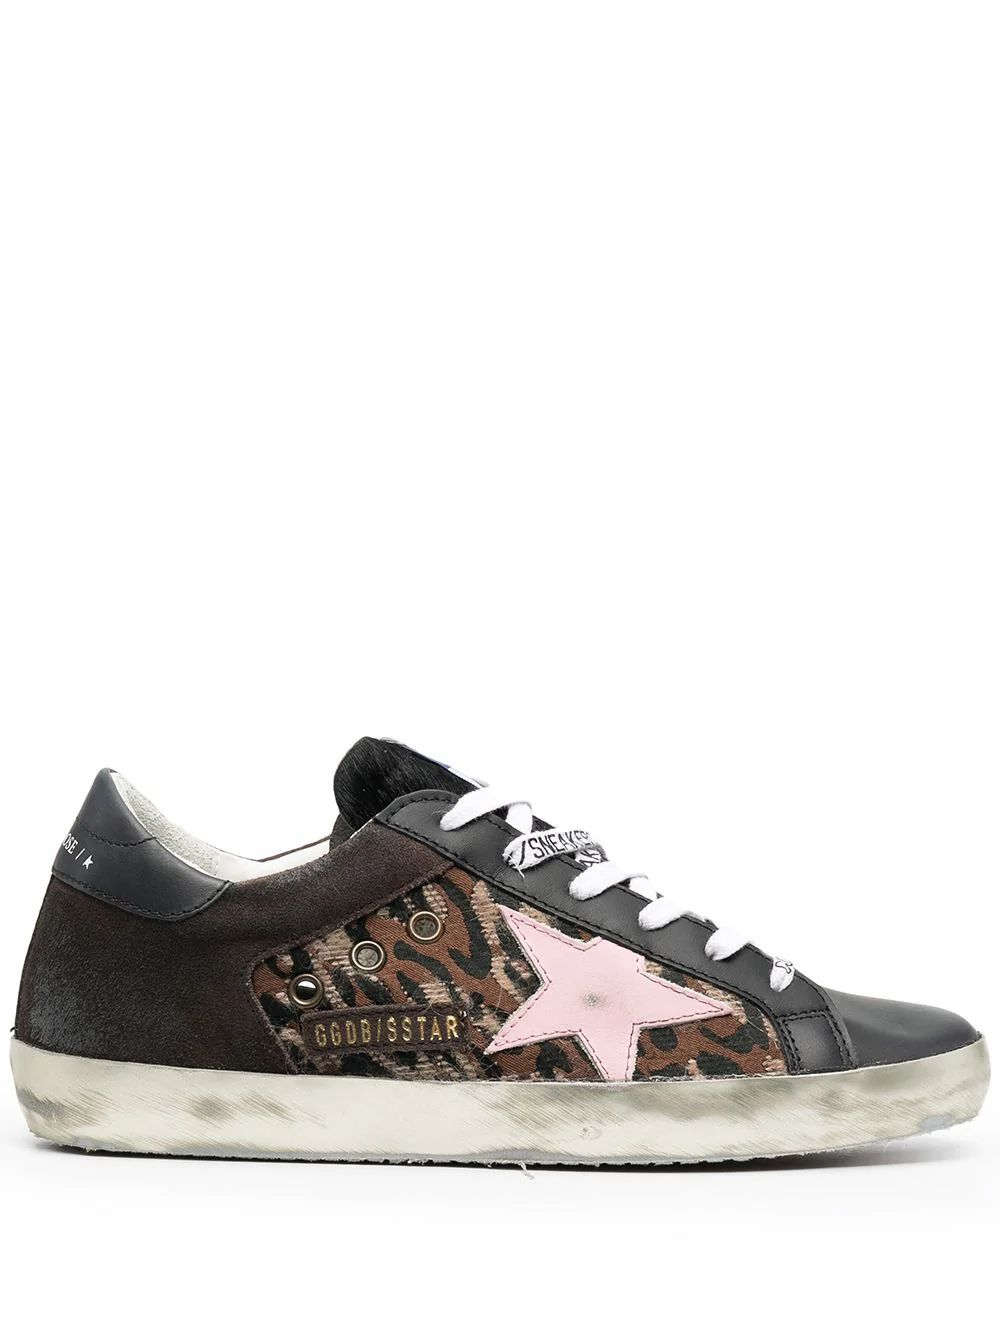 Golden Goose Leathers GOLDEN GOOSE WOMEN'S GWF00103F00019380217 BLACK LEATHER SNEAKERS